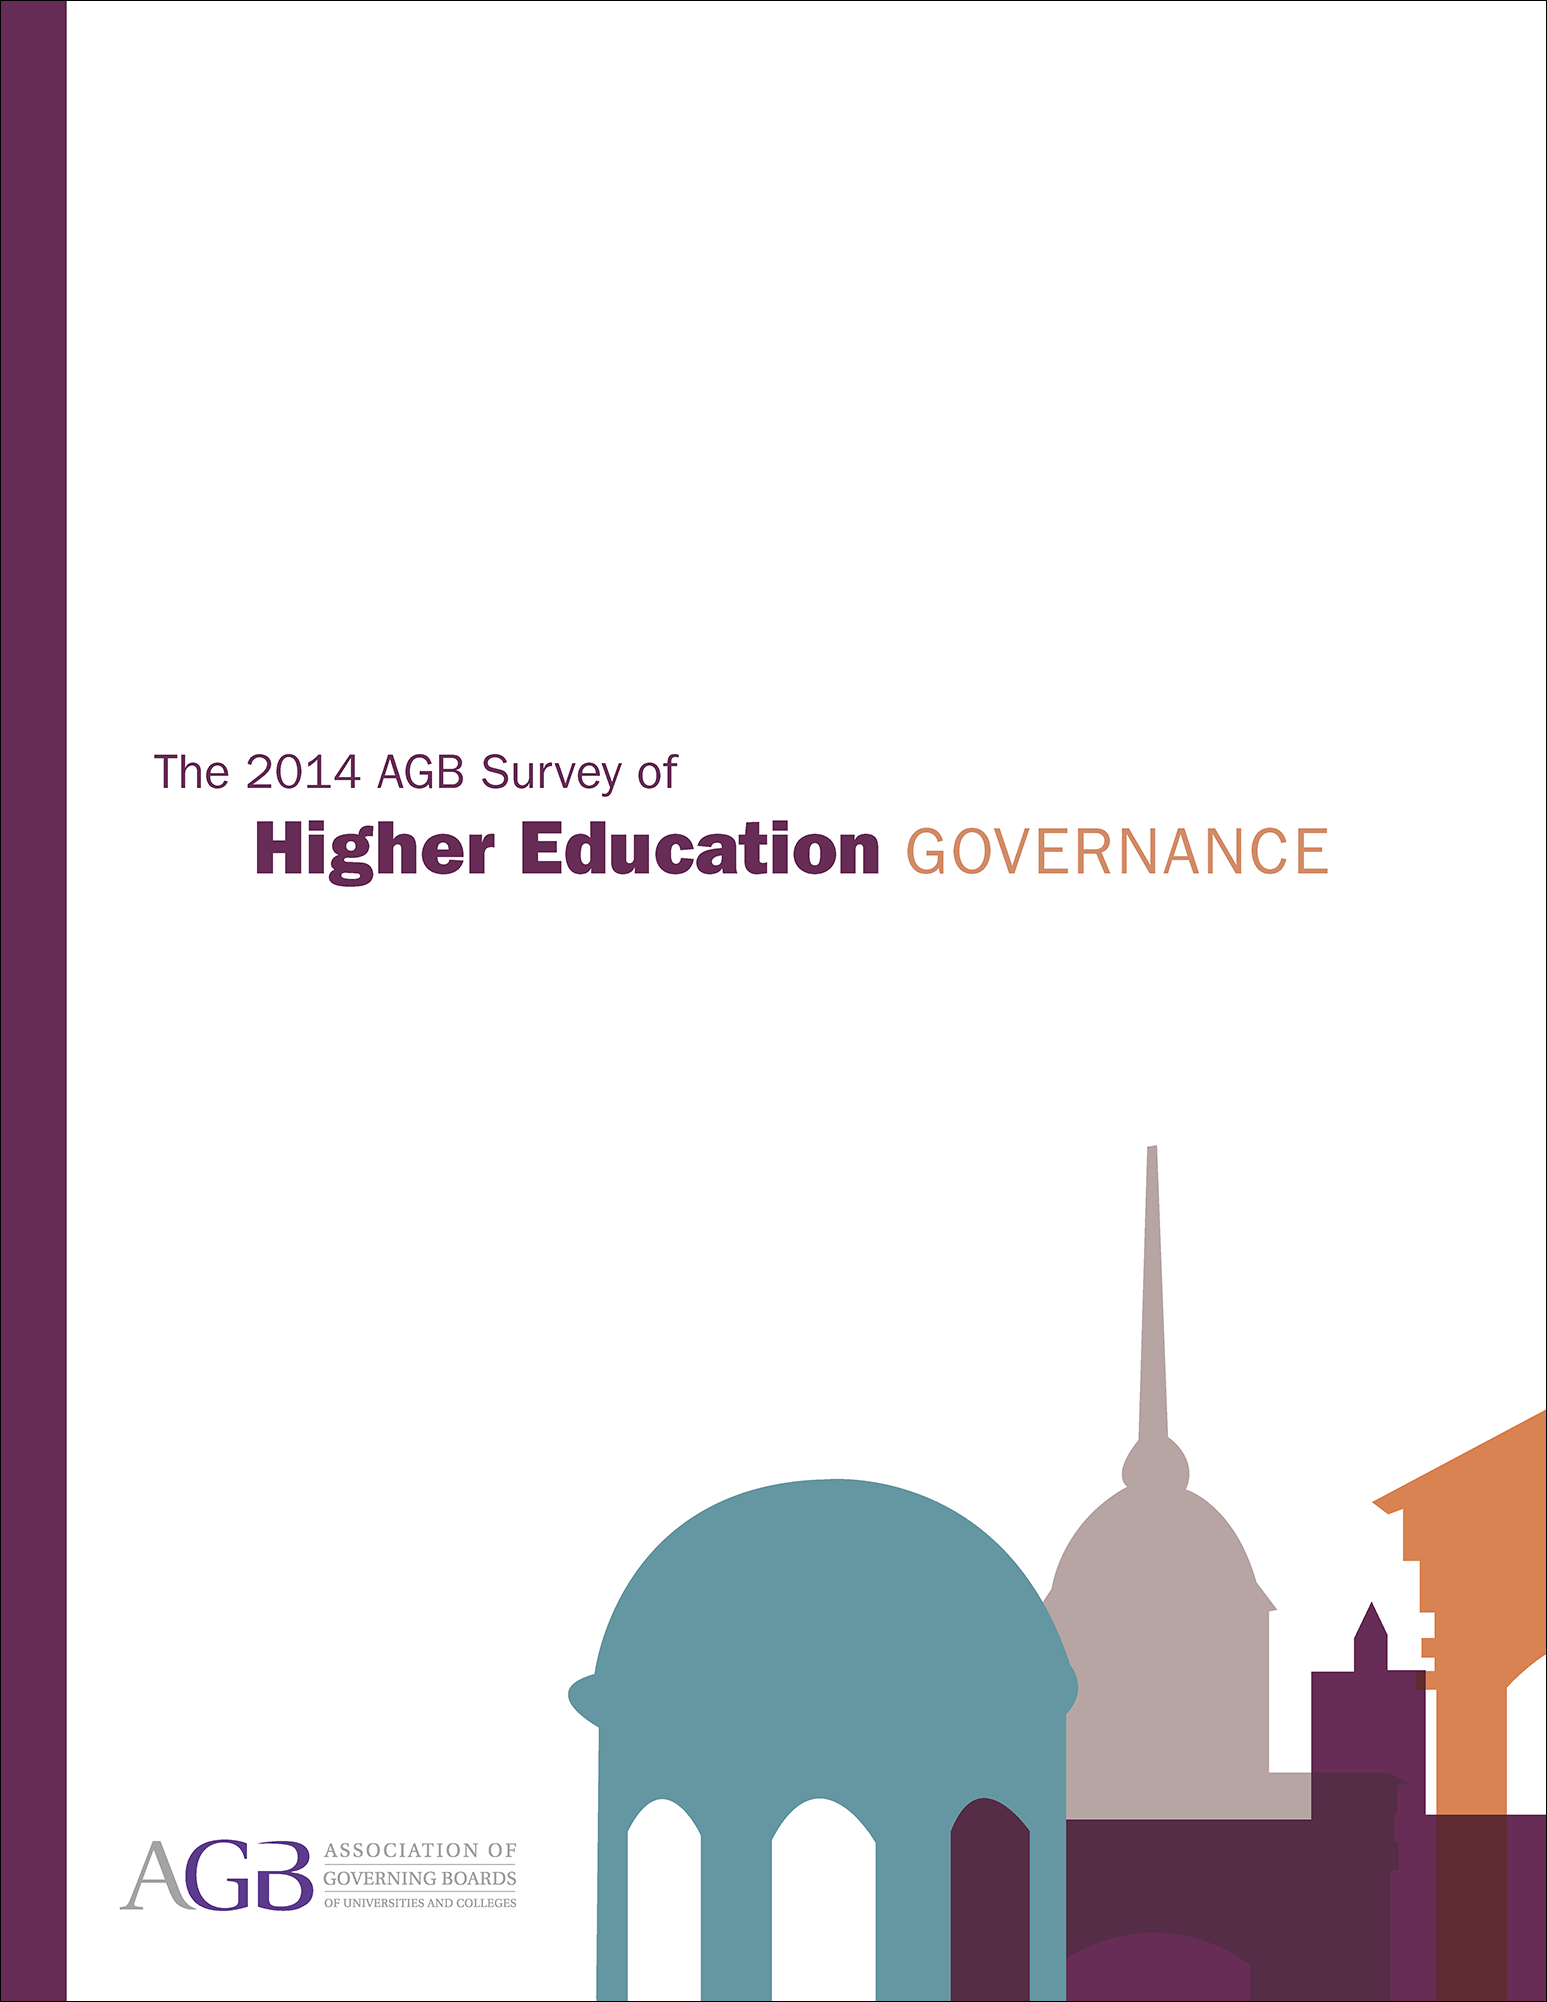 The 2014 AGB Survey of Higher Education Governance